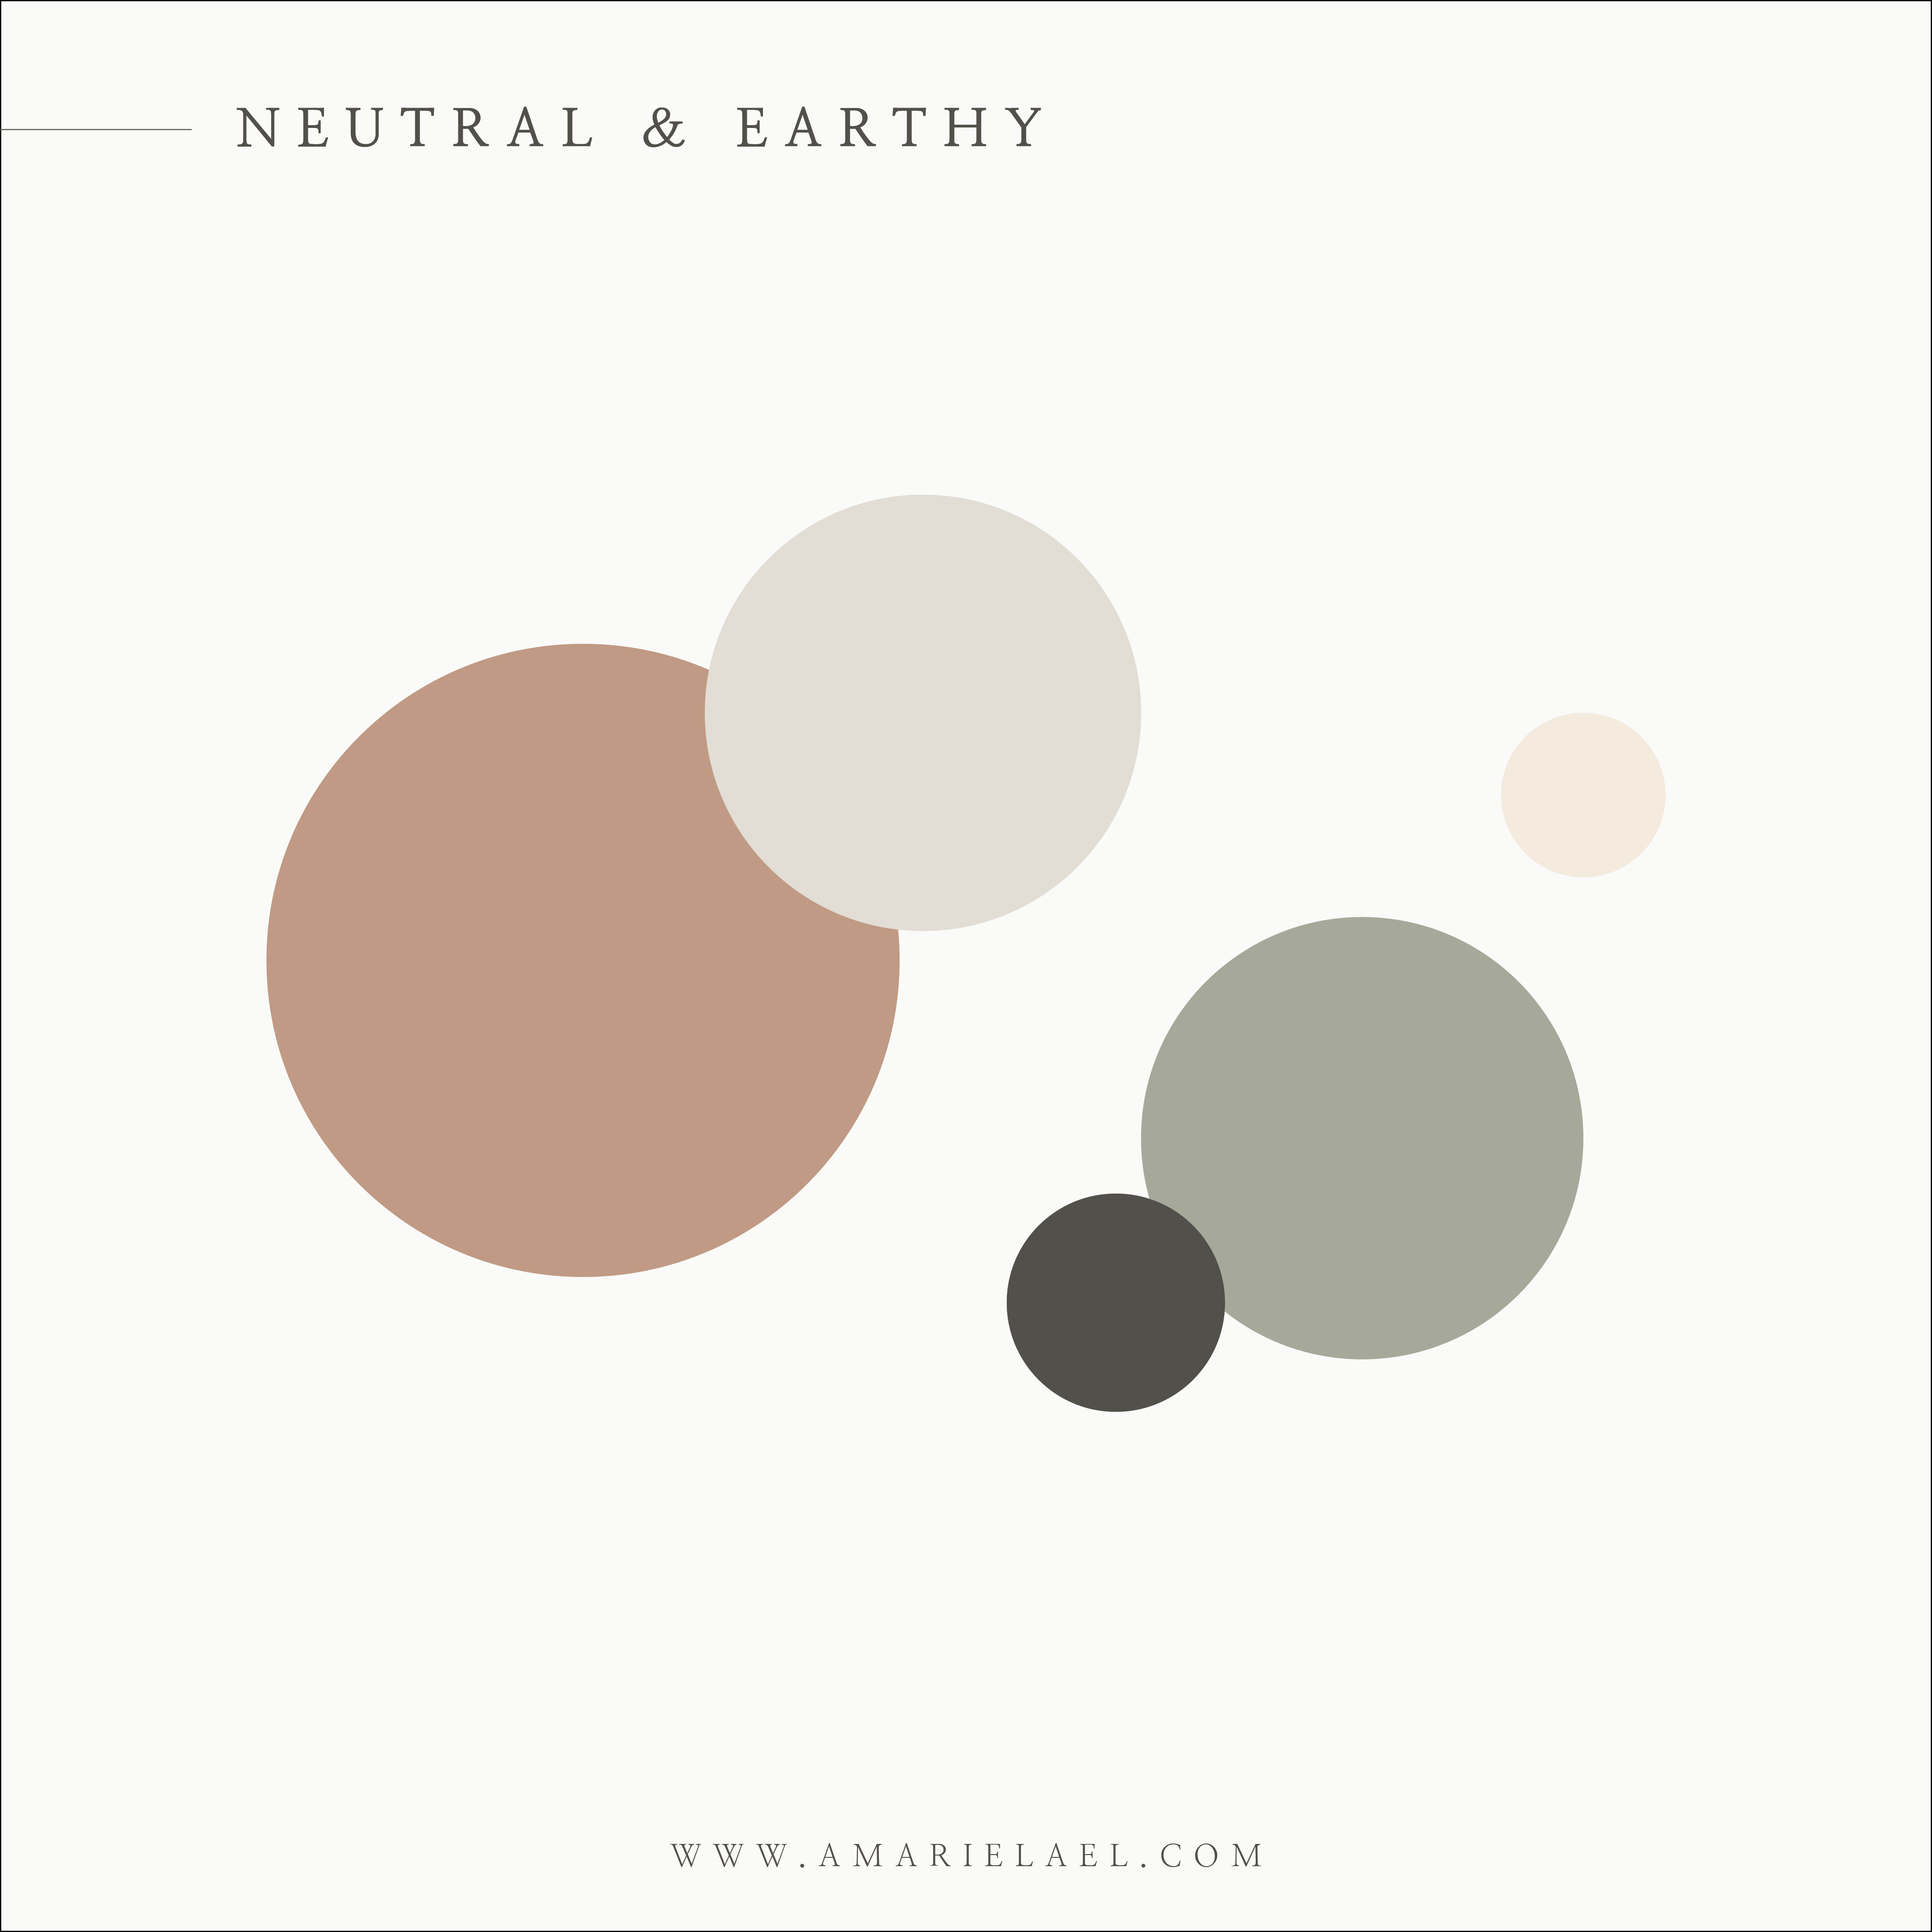 neutral and earthy color palette inspiration amarie lael design in 2020 earthy color palette sage color palette beige color palette pinterest